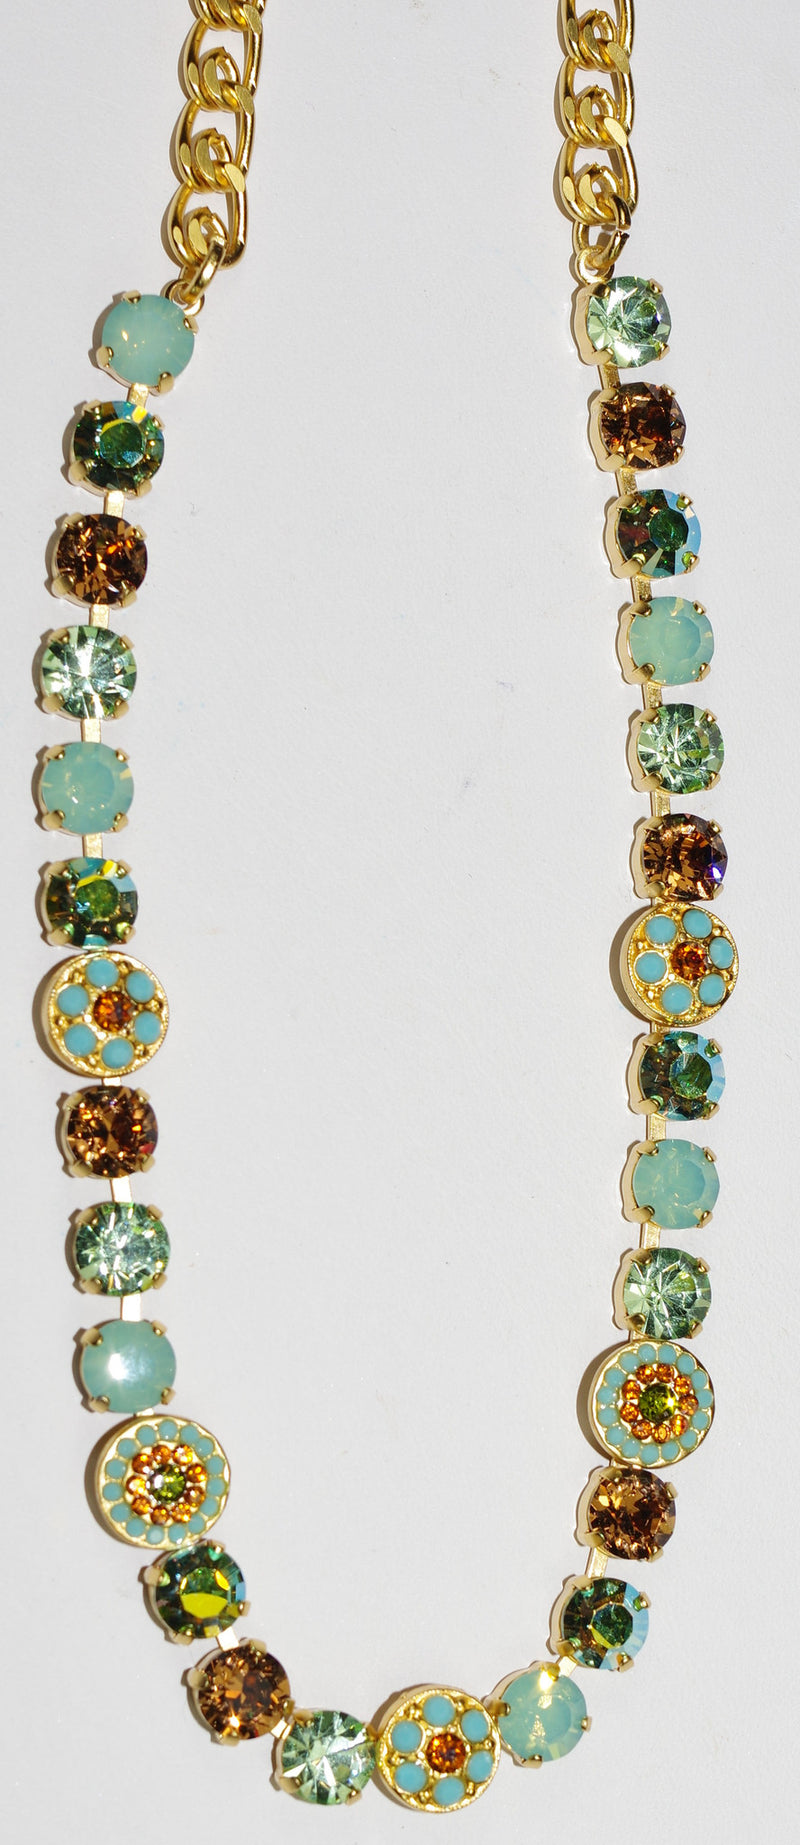 "MARIANA NECKLACE RISING SUN: amber, pacific opal, blue, green stones in yellow gold setting, 17"" adjustable chain"